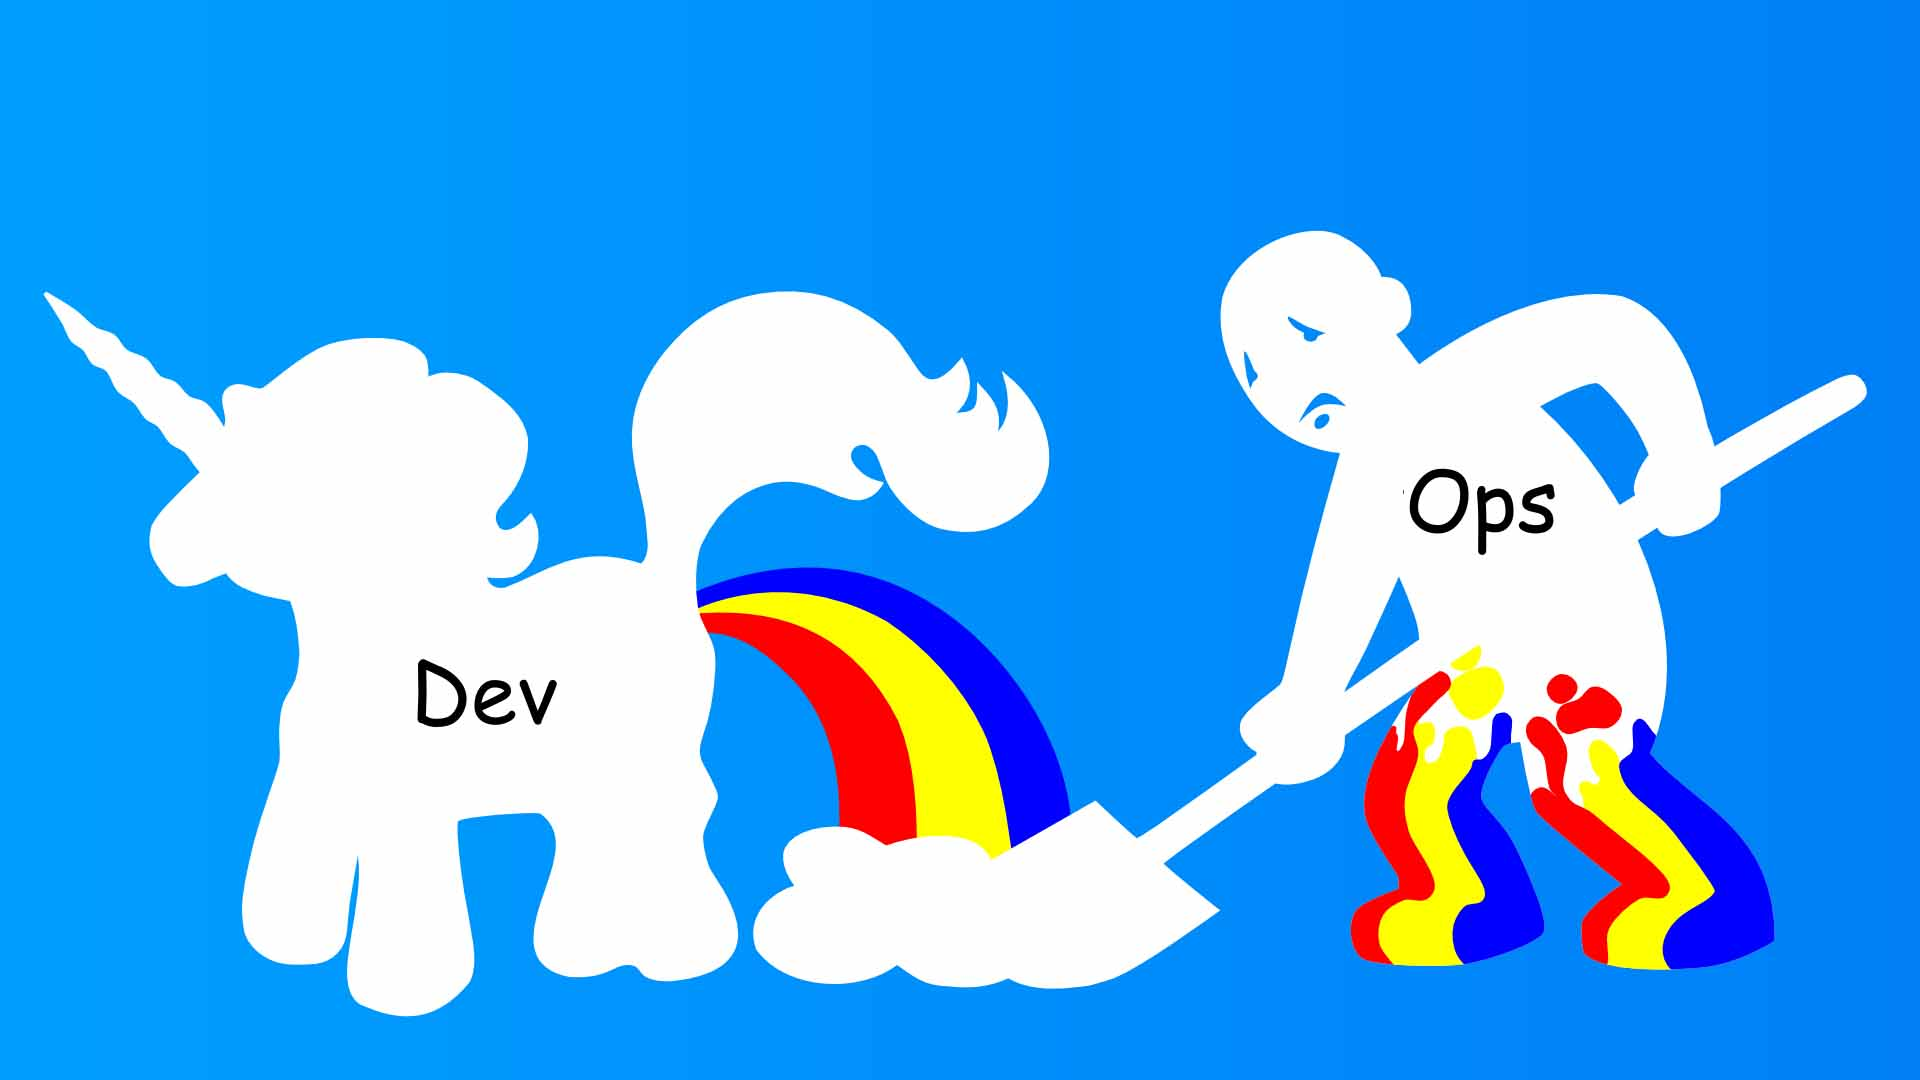 16 DevOps conferences in 201? whose performances are worth seeing